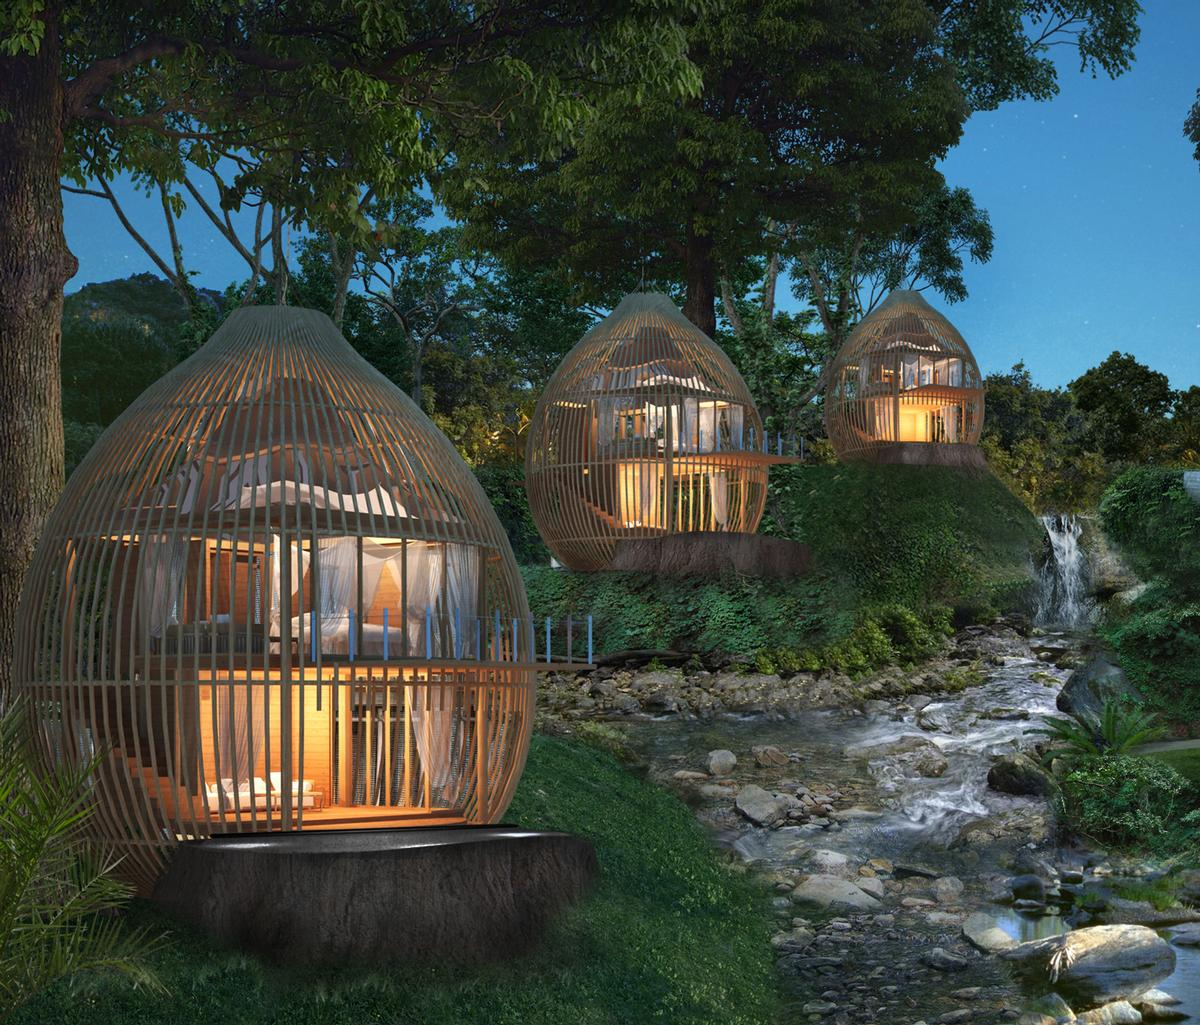 The seven Tree Pool Houses use building techniques to give the impression that the structures are suspended from trees / Keemala